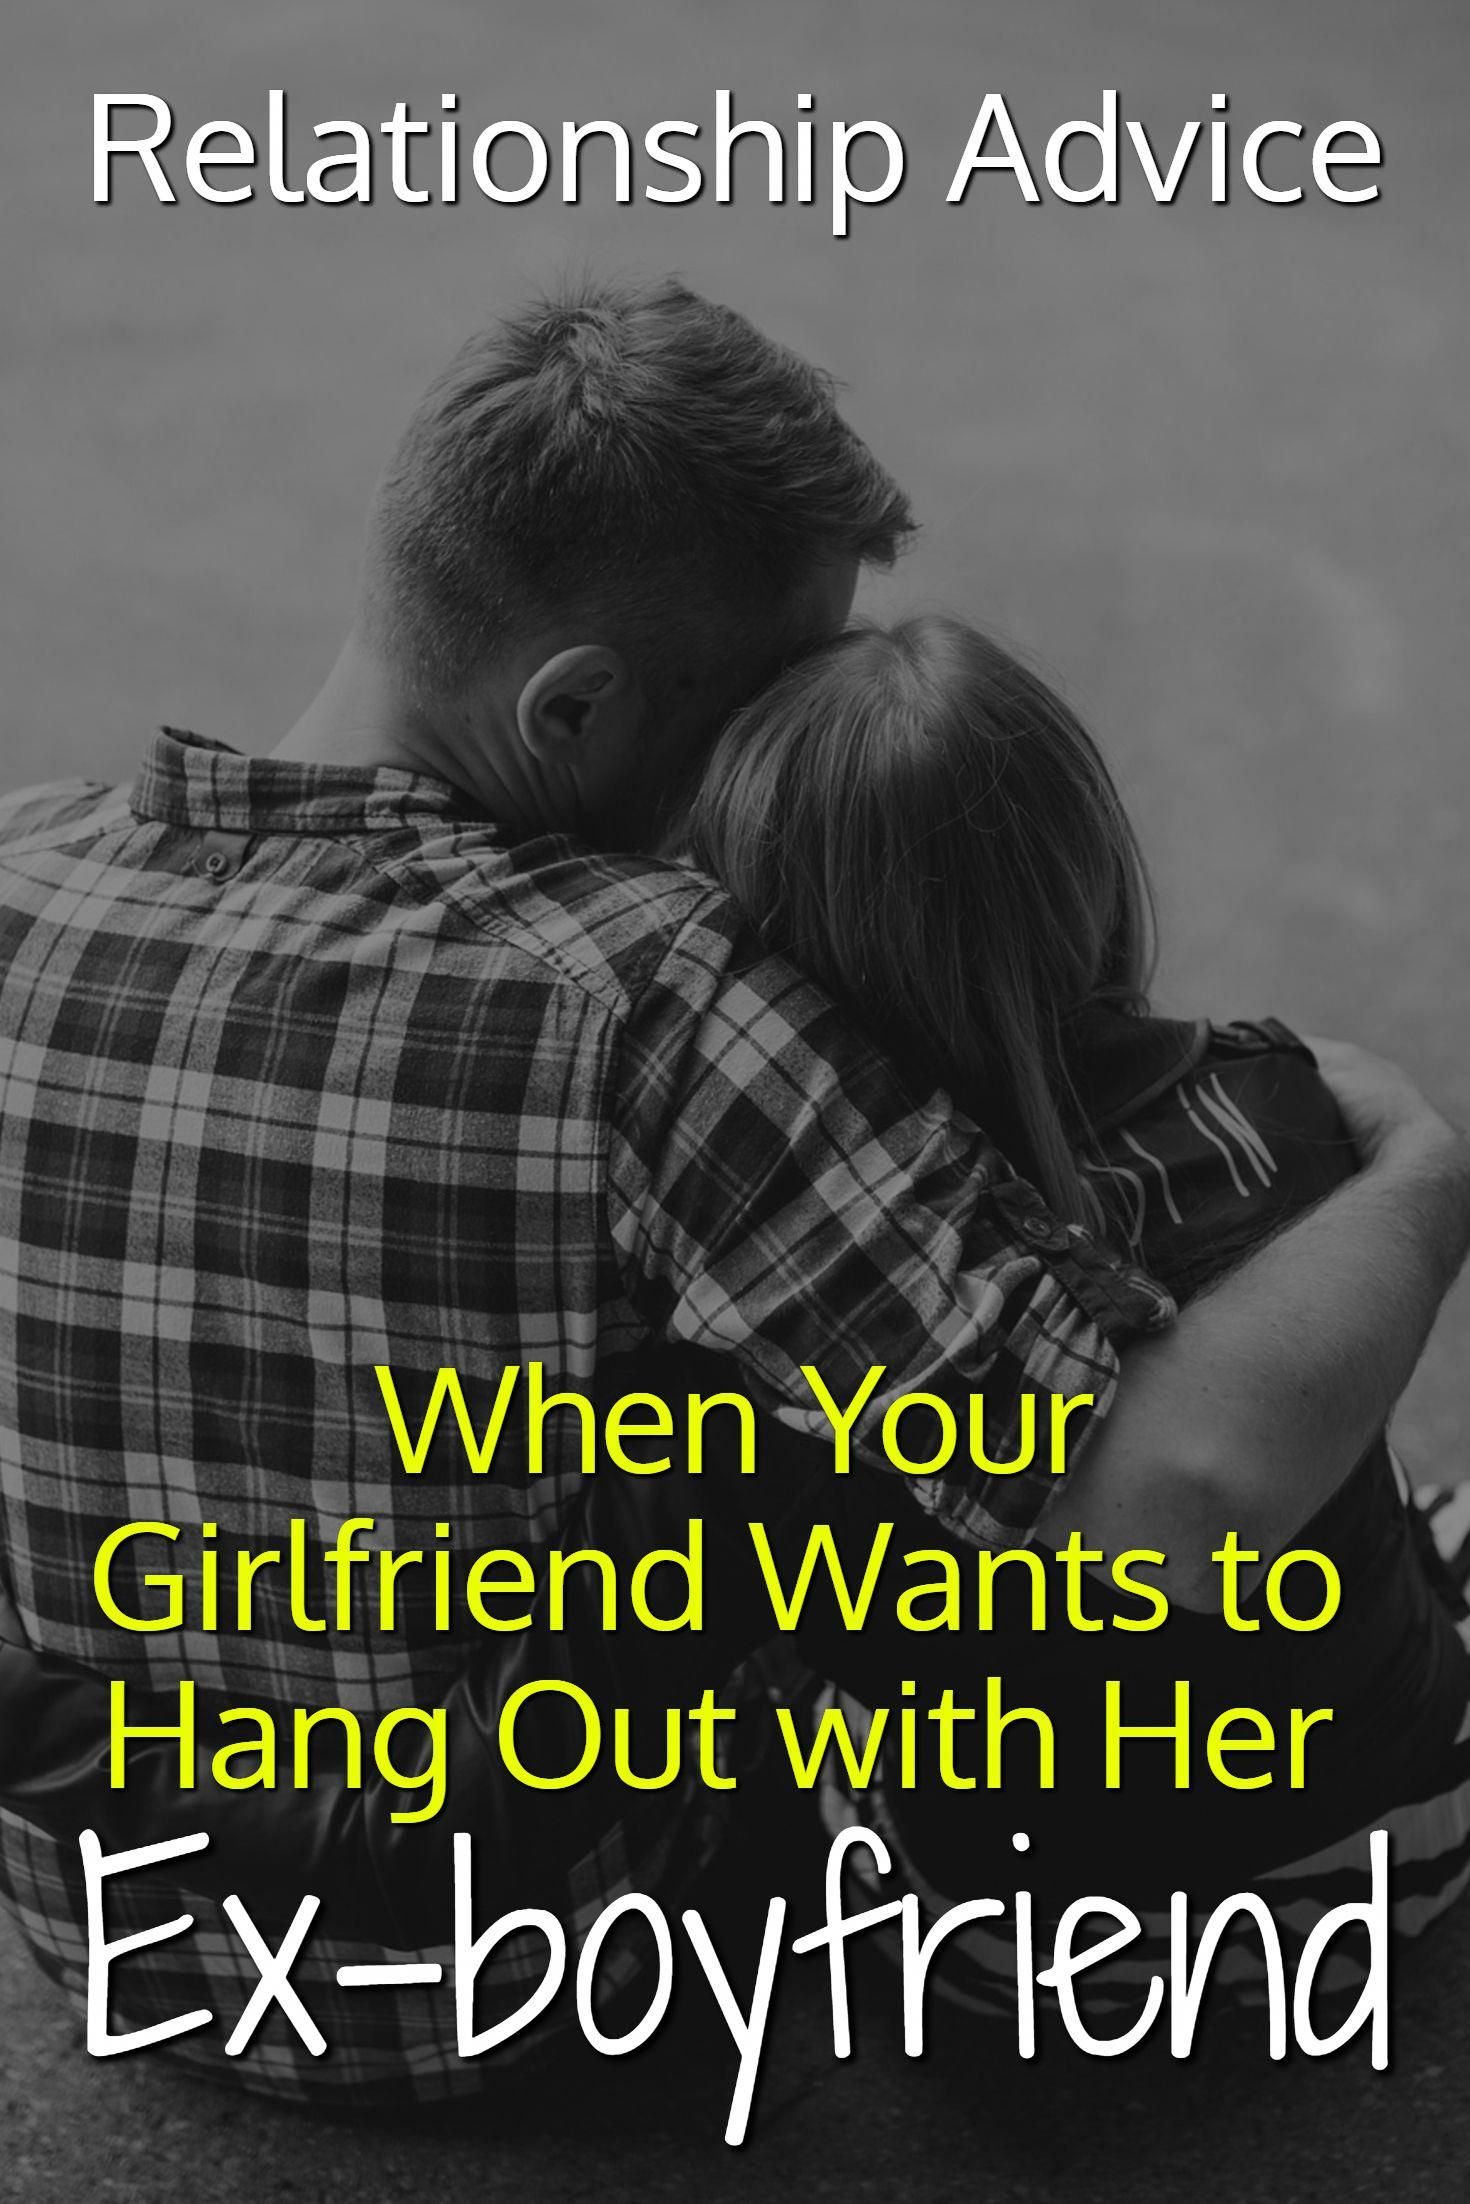 Ex girlfriend wants to hang out